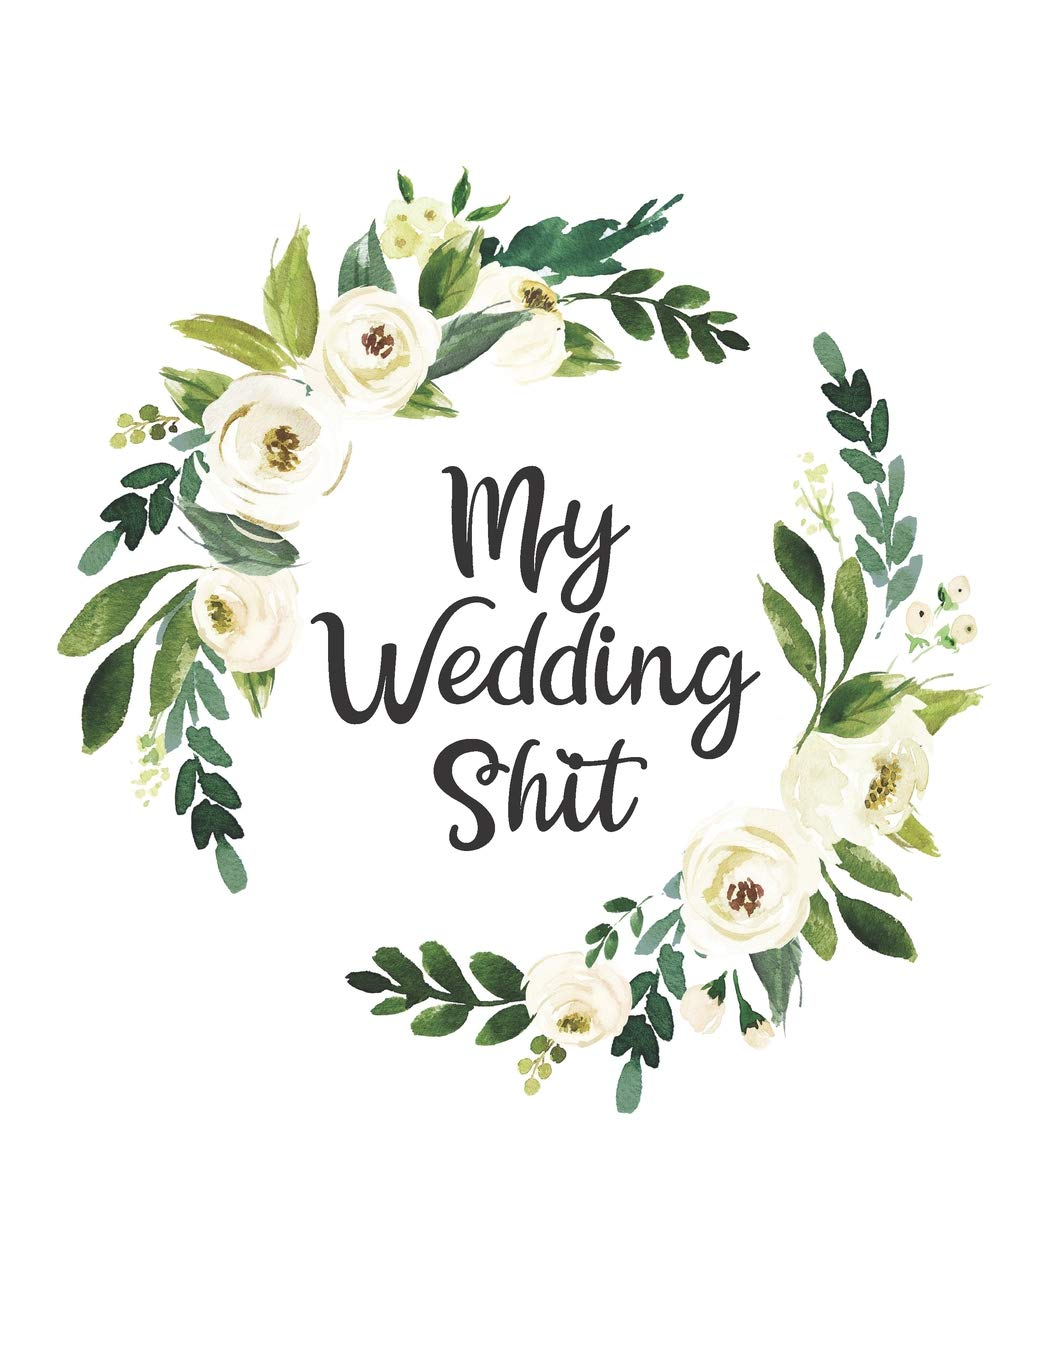 My Wedding Shit A Fun And Portable Wedding Planner And Organizer With Bridal Gown Coloring Pages To Organize Your Dream Wedding While De Stressing Emporium Planner 9781070242323 Amazon Com Books